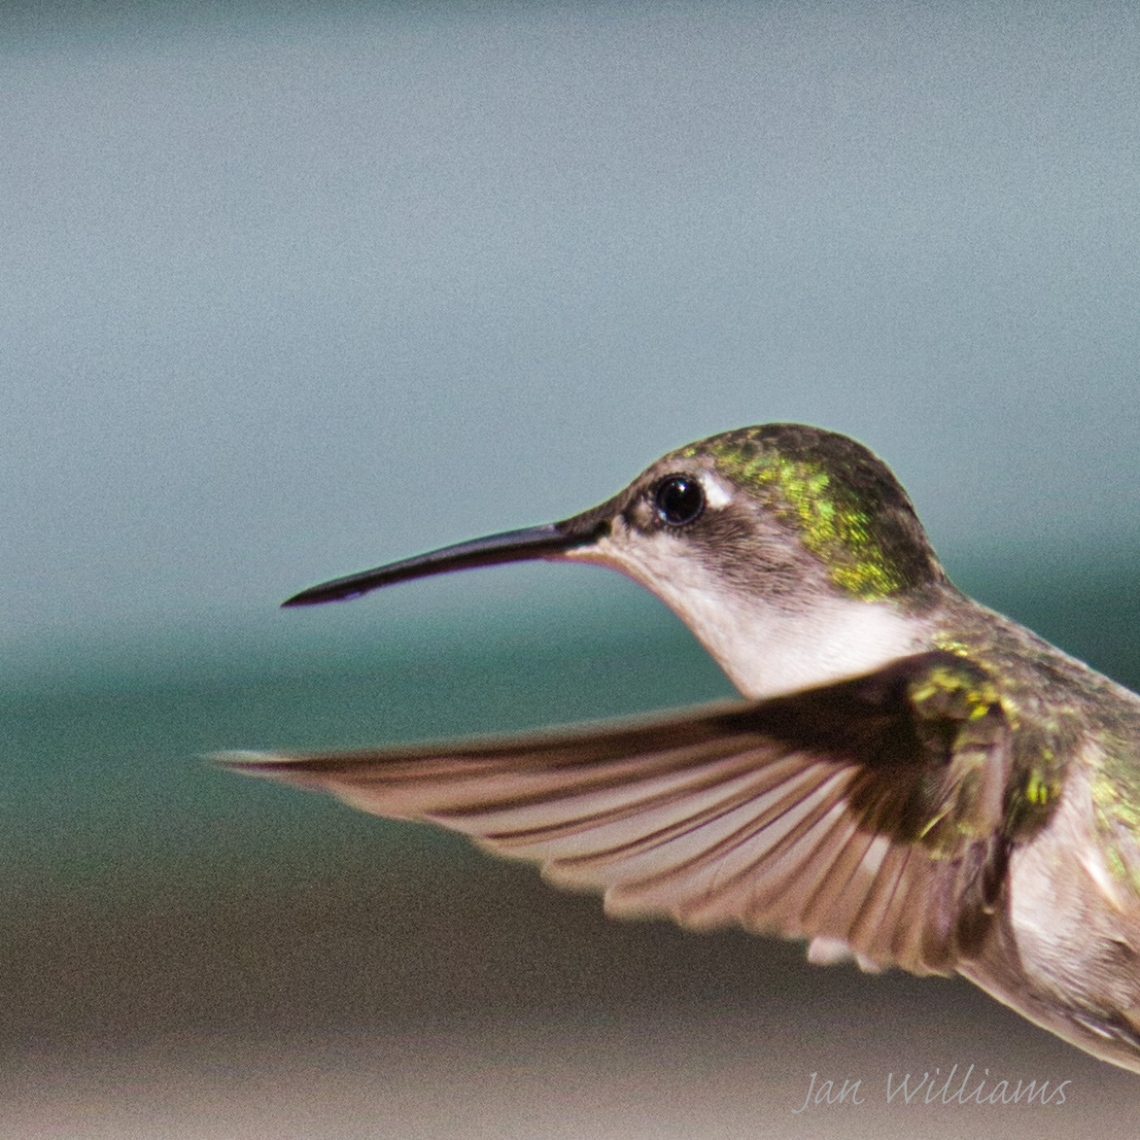 Hummingbird-In flight